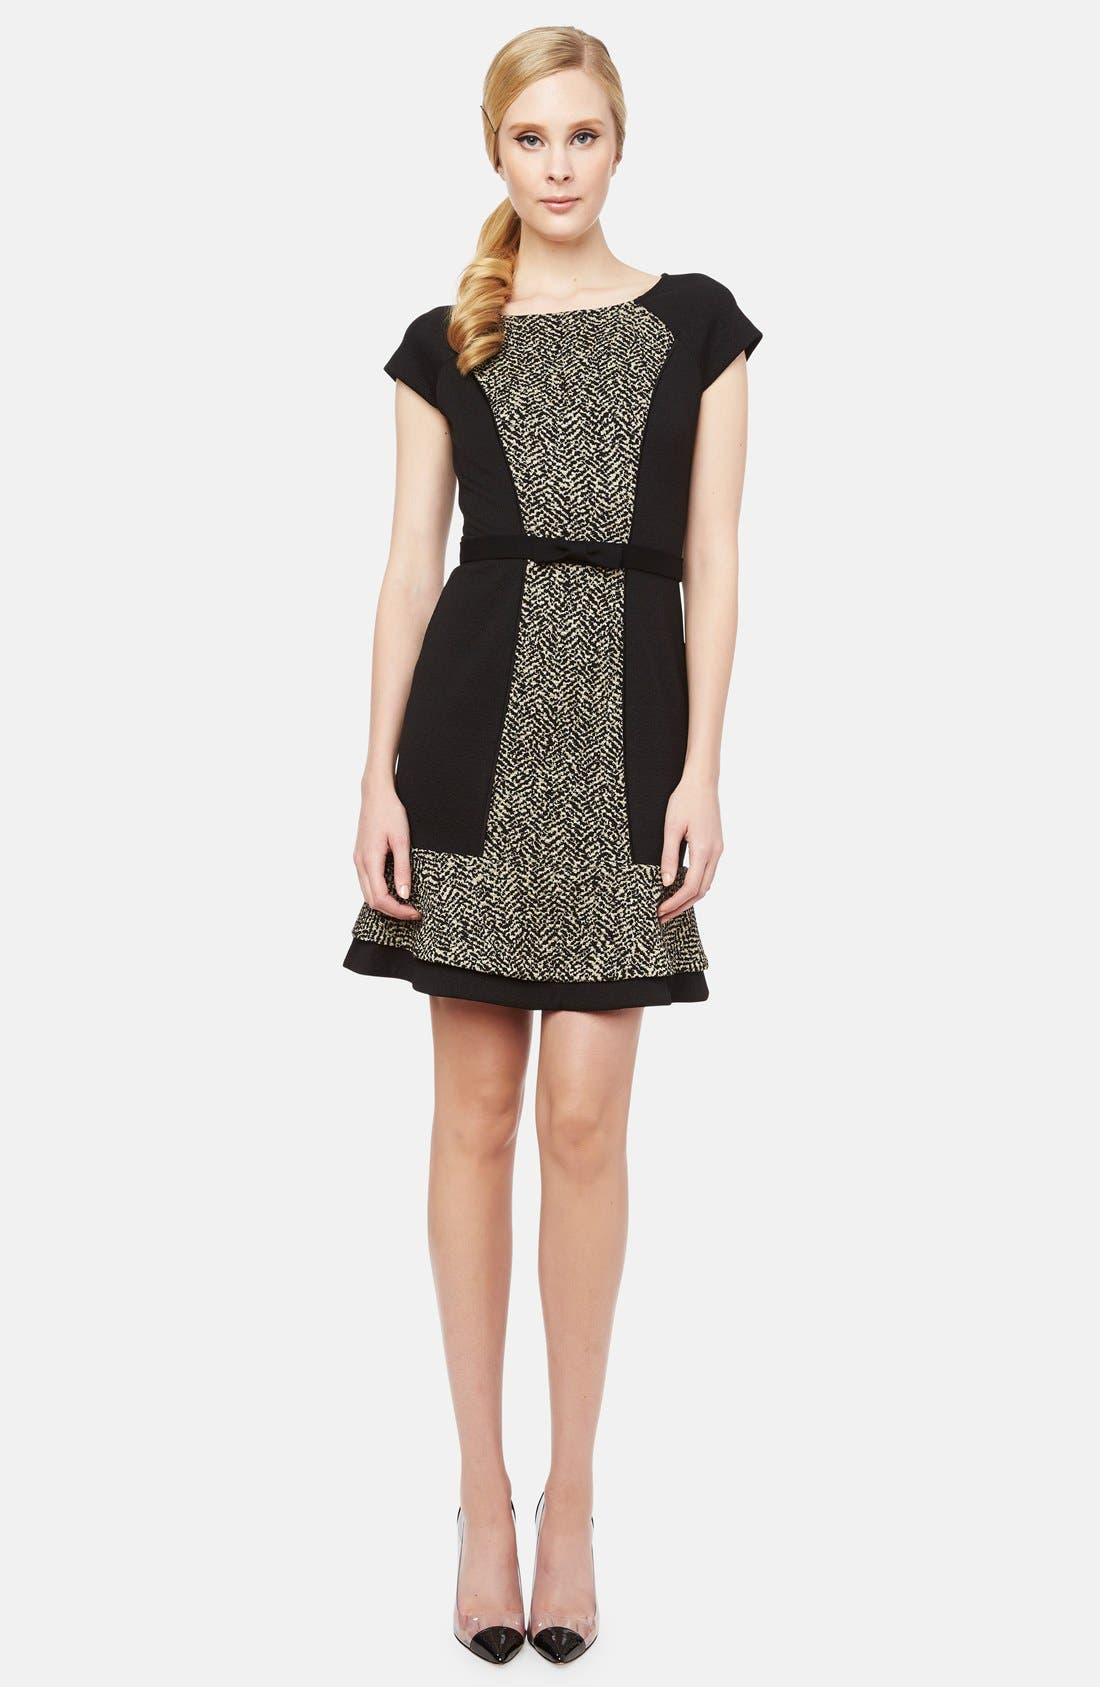 Alternate Image 1 Selected - ERIN erin fetherston 'Liza' Belted Jacquard Fit & Flare Dress